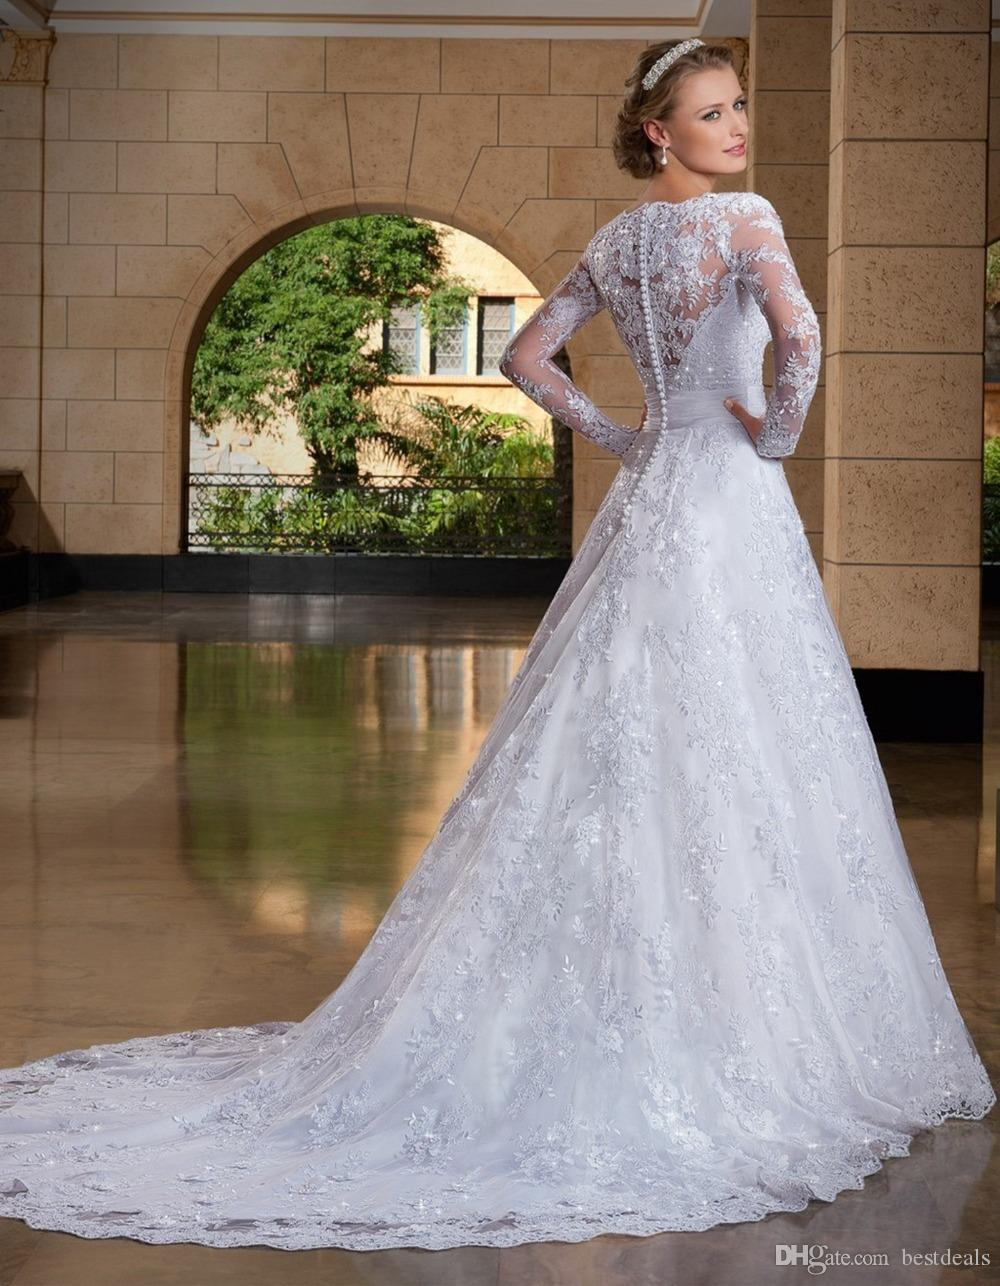 2016 Spring New Pure White Lace A-Line Wedding Dresses Plunging Neckline See Through Back Long Sleeves Bridal Gowns Vestido De Noiva Manga